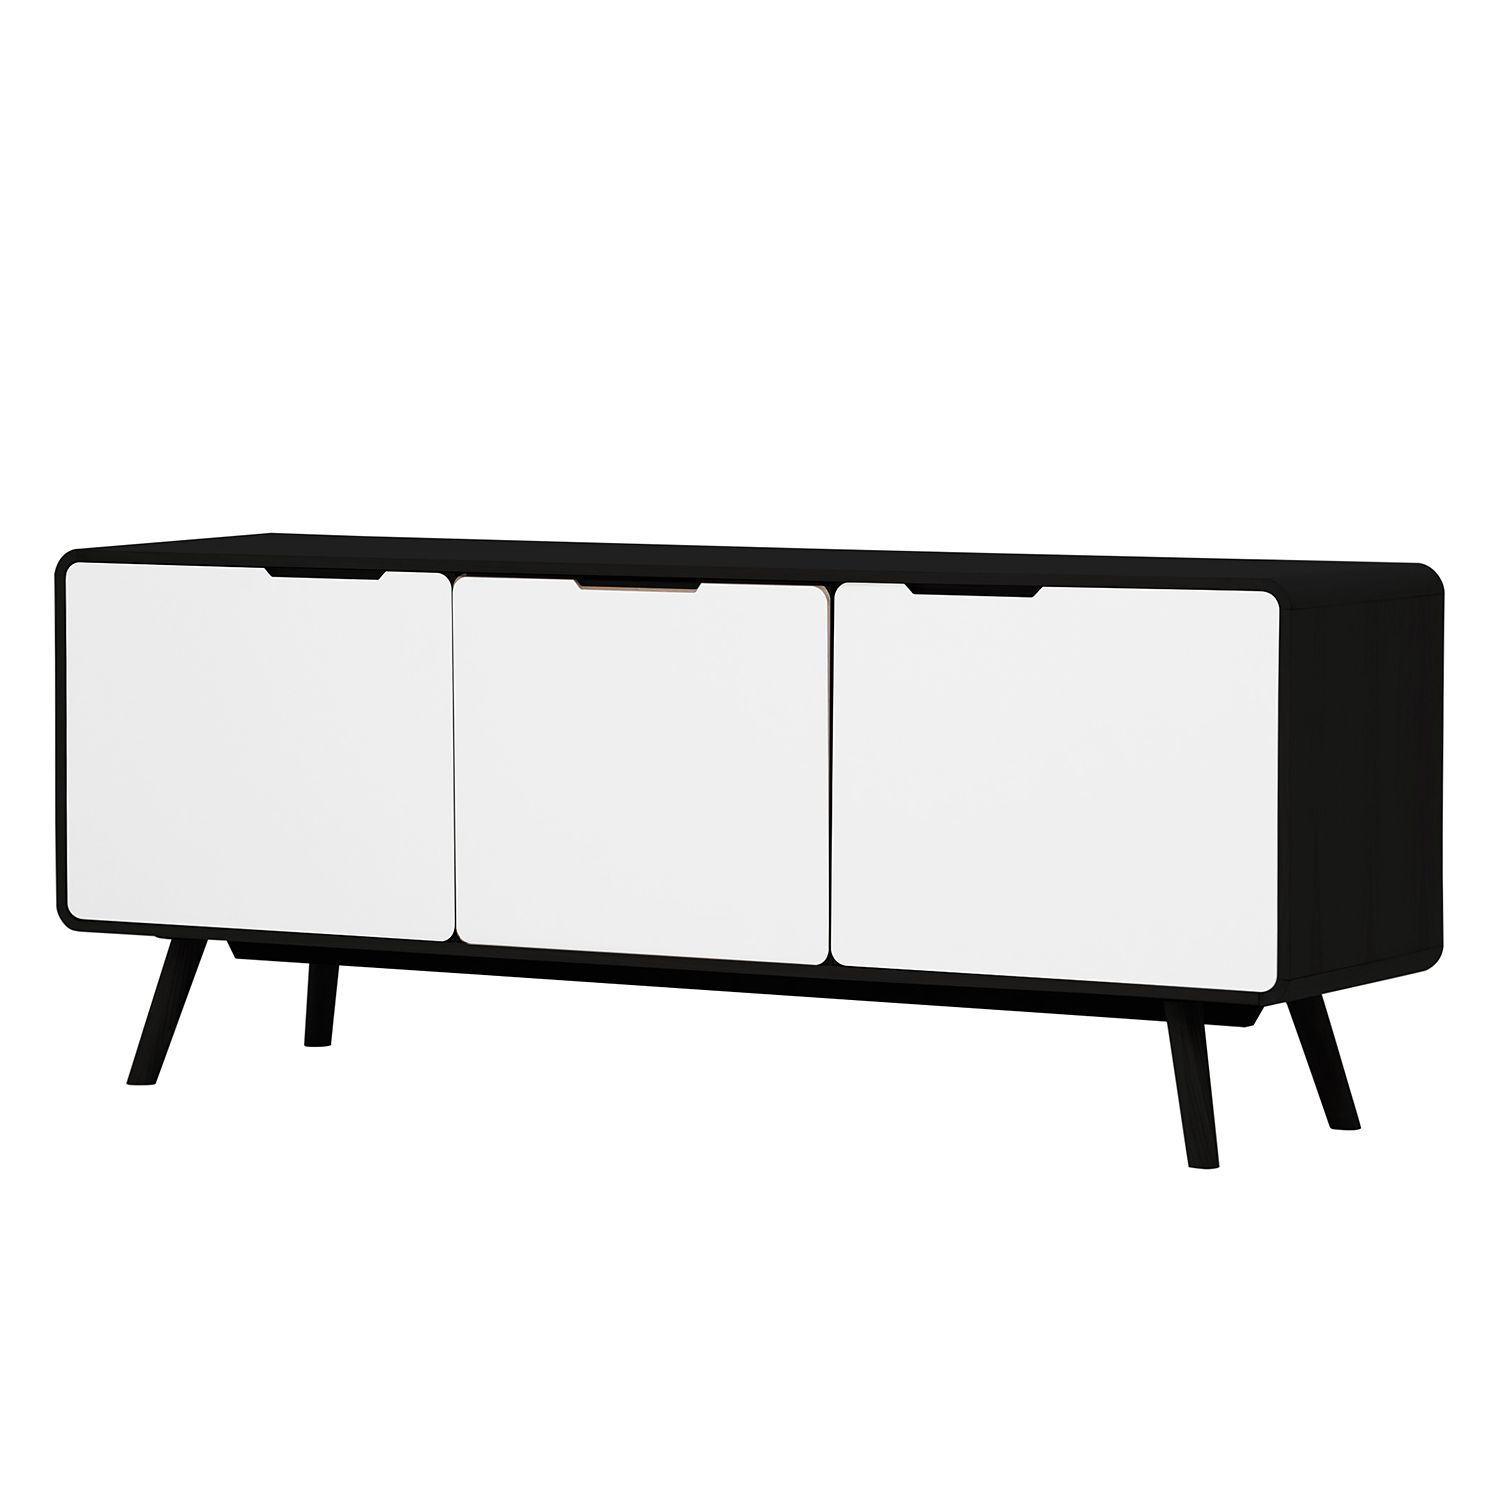 sideboard helvig ii schwarz wei g nstig. Black Bedroom Furniture Sets. Home Design Ideas